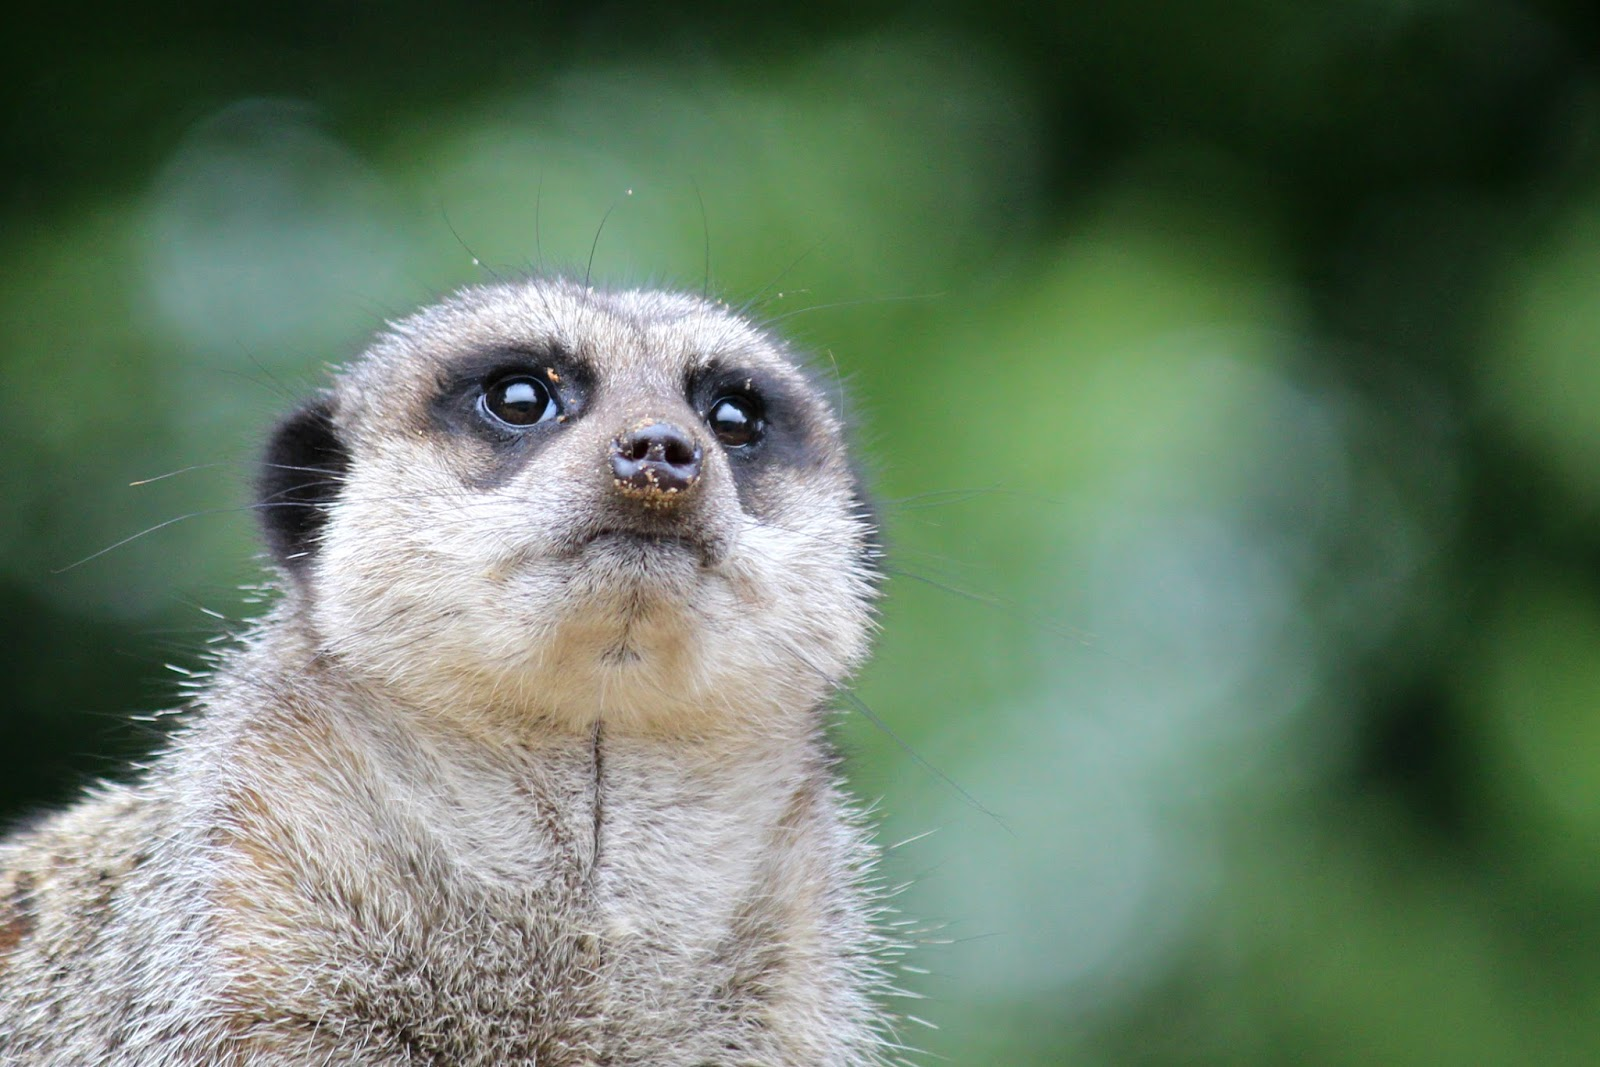 Isle Of Man Photo Diary meerkat wildlife park photography